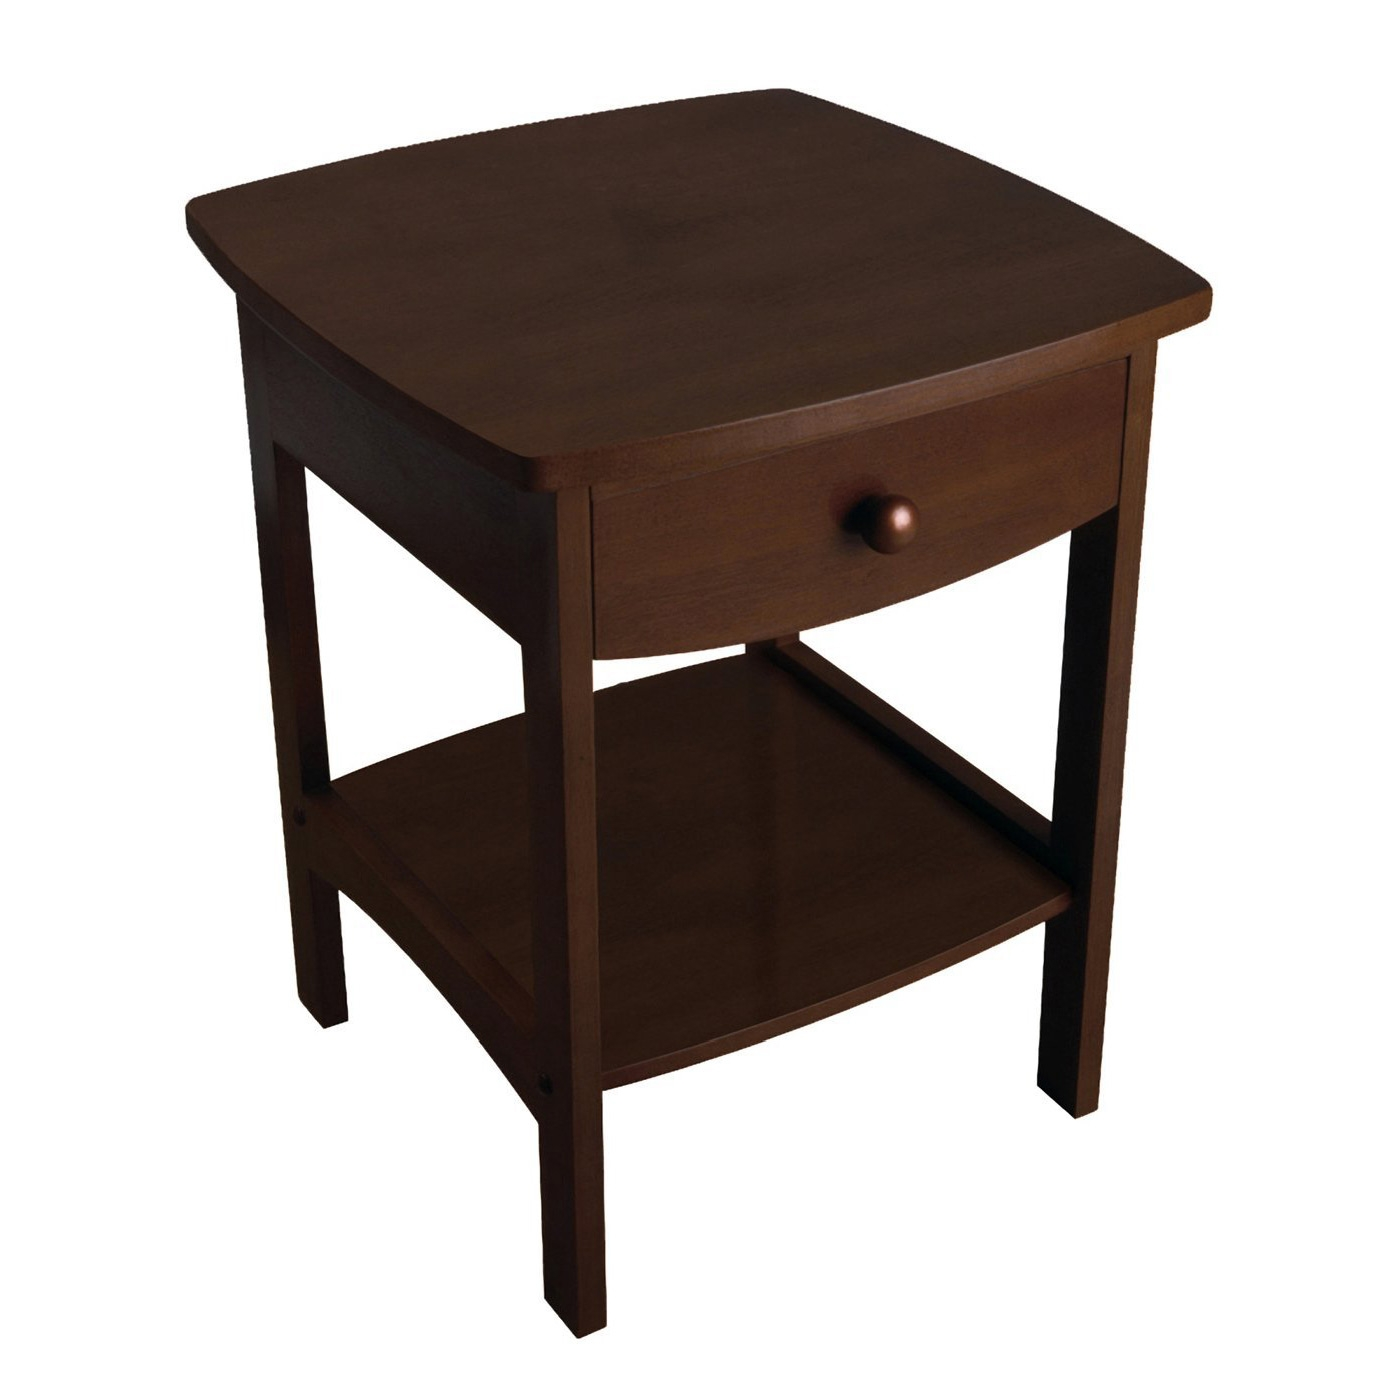 Combining solid/composite wood construction with a tidy and practical style, this Walnut Finish Accent Table Nightstand with One Drawer makes a fresh and clean addition to the room. The oversized tabletop features a straight-edged square shape, while below the four rectangular legs host a deep storage drawer and open shelf. For subtle flair, the drawer front and lower side rails are sculpted with a wide curve that softens the table's overall look. Also notice how the wood nailhead accents and a simple drawer pull offer a tailored finish. Classic enough to stay in style no matter how the furnishings around it change, this table comes in four handsome finishes: Natural, Walnut, Black, and White. Simple carved rails complement roomy storage drawer and open shelf; Some assembly required.